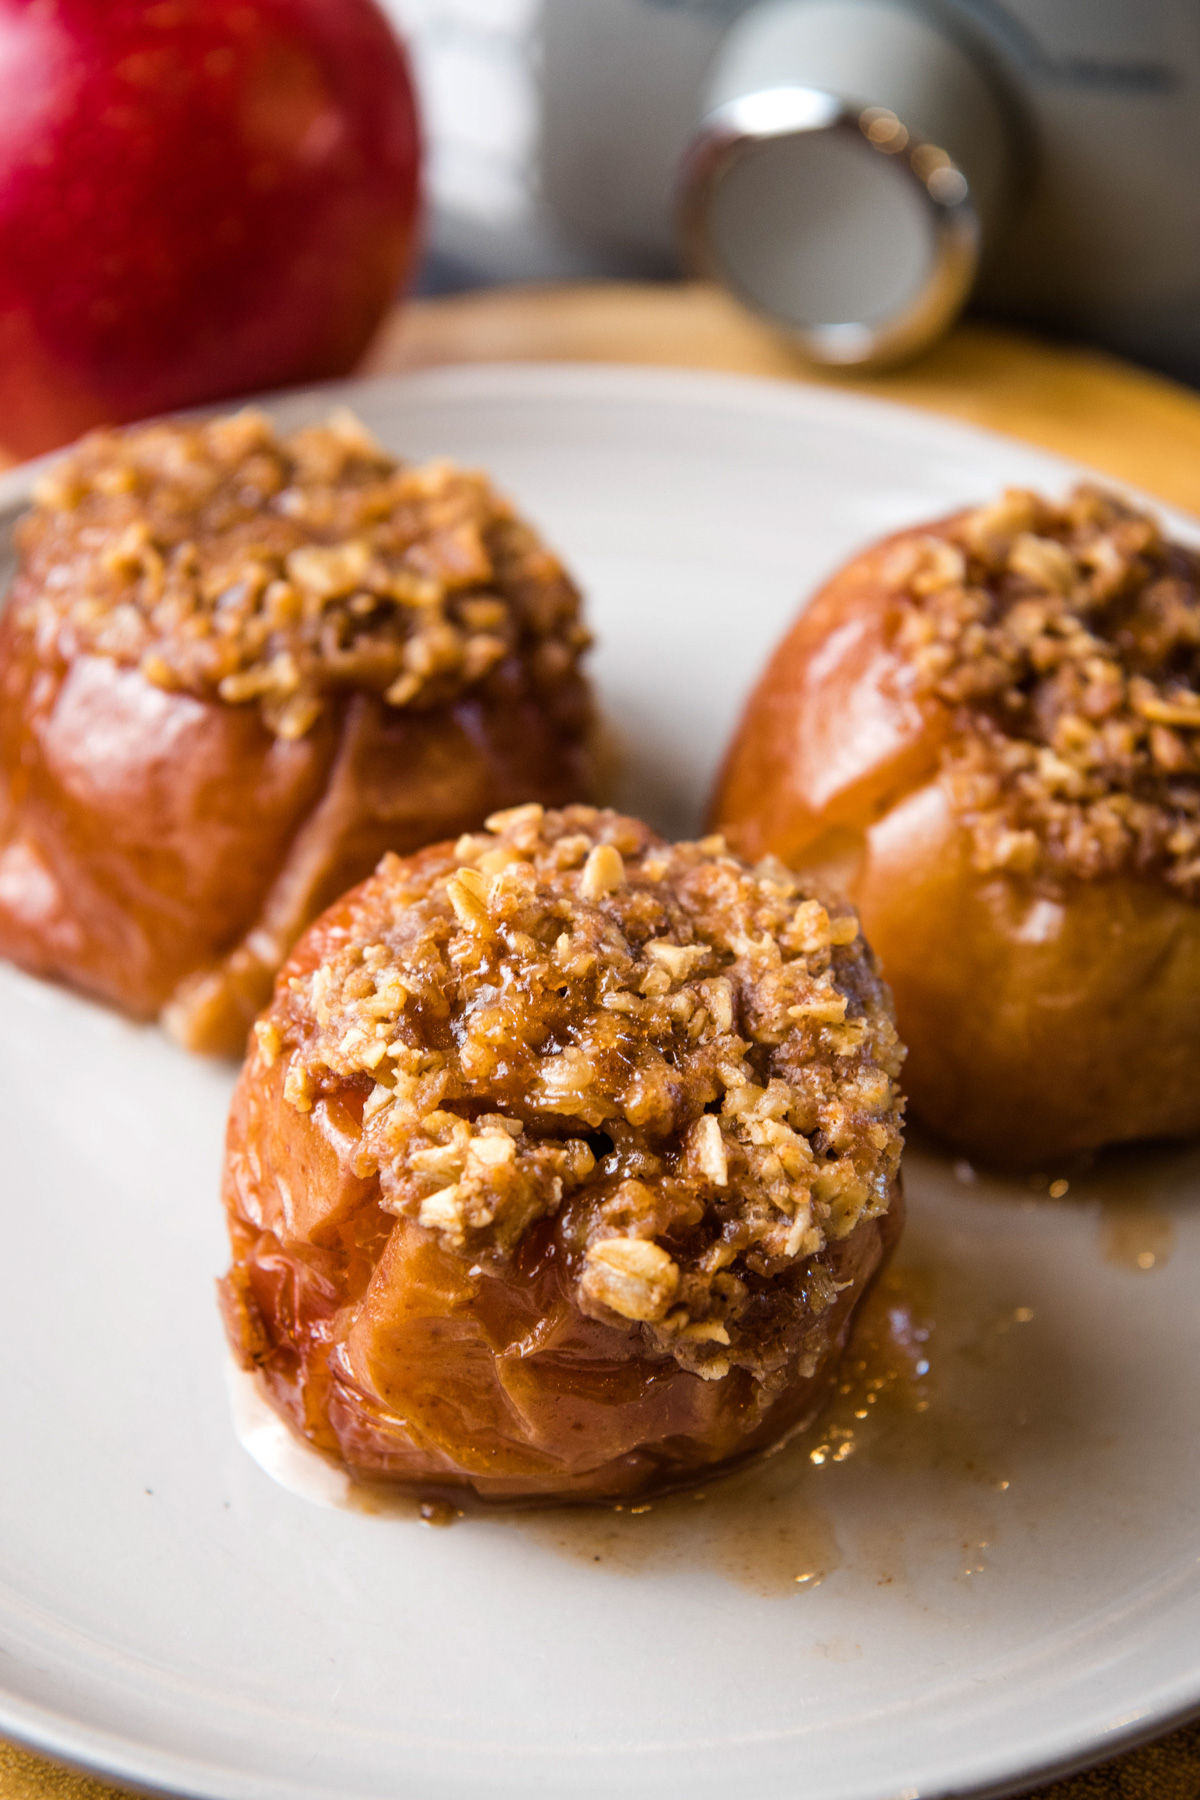 Crock Pot baked apples stuffed with oats on gray plate